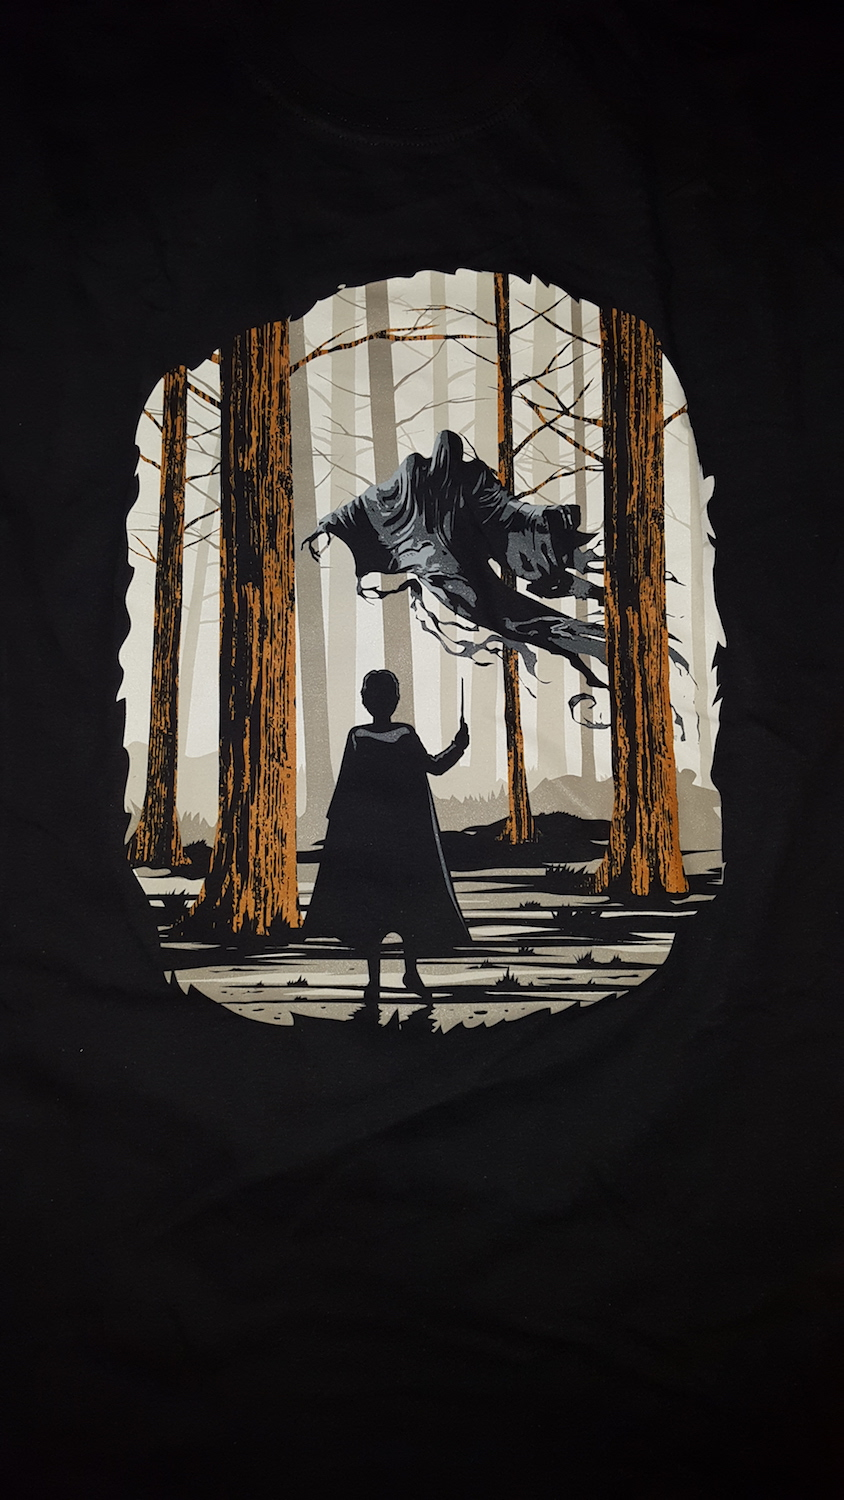 Sticking with a Patronus theme, the third T-shirt showed a Dementor scene.